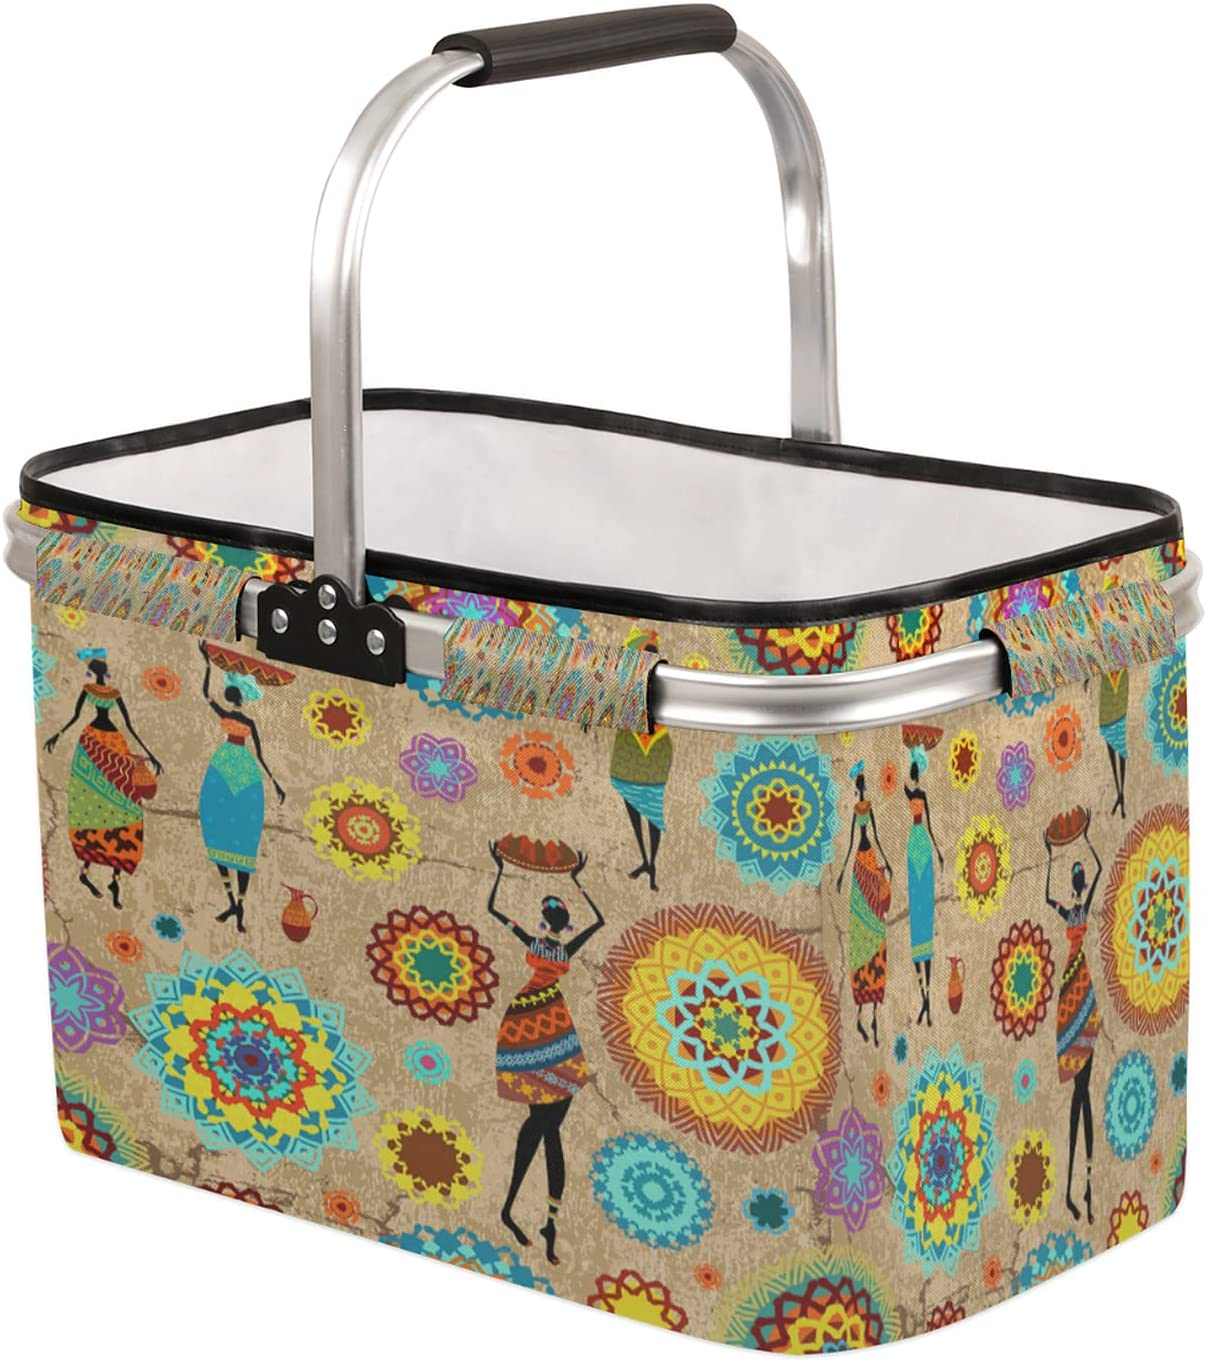 Collapsible Market Basket with Department store Strong Aluminum Frame Handle Finally resale start Soft